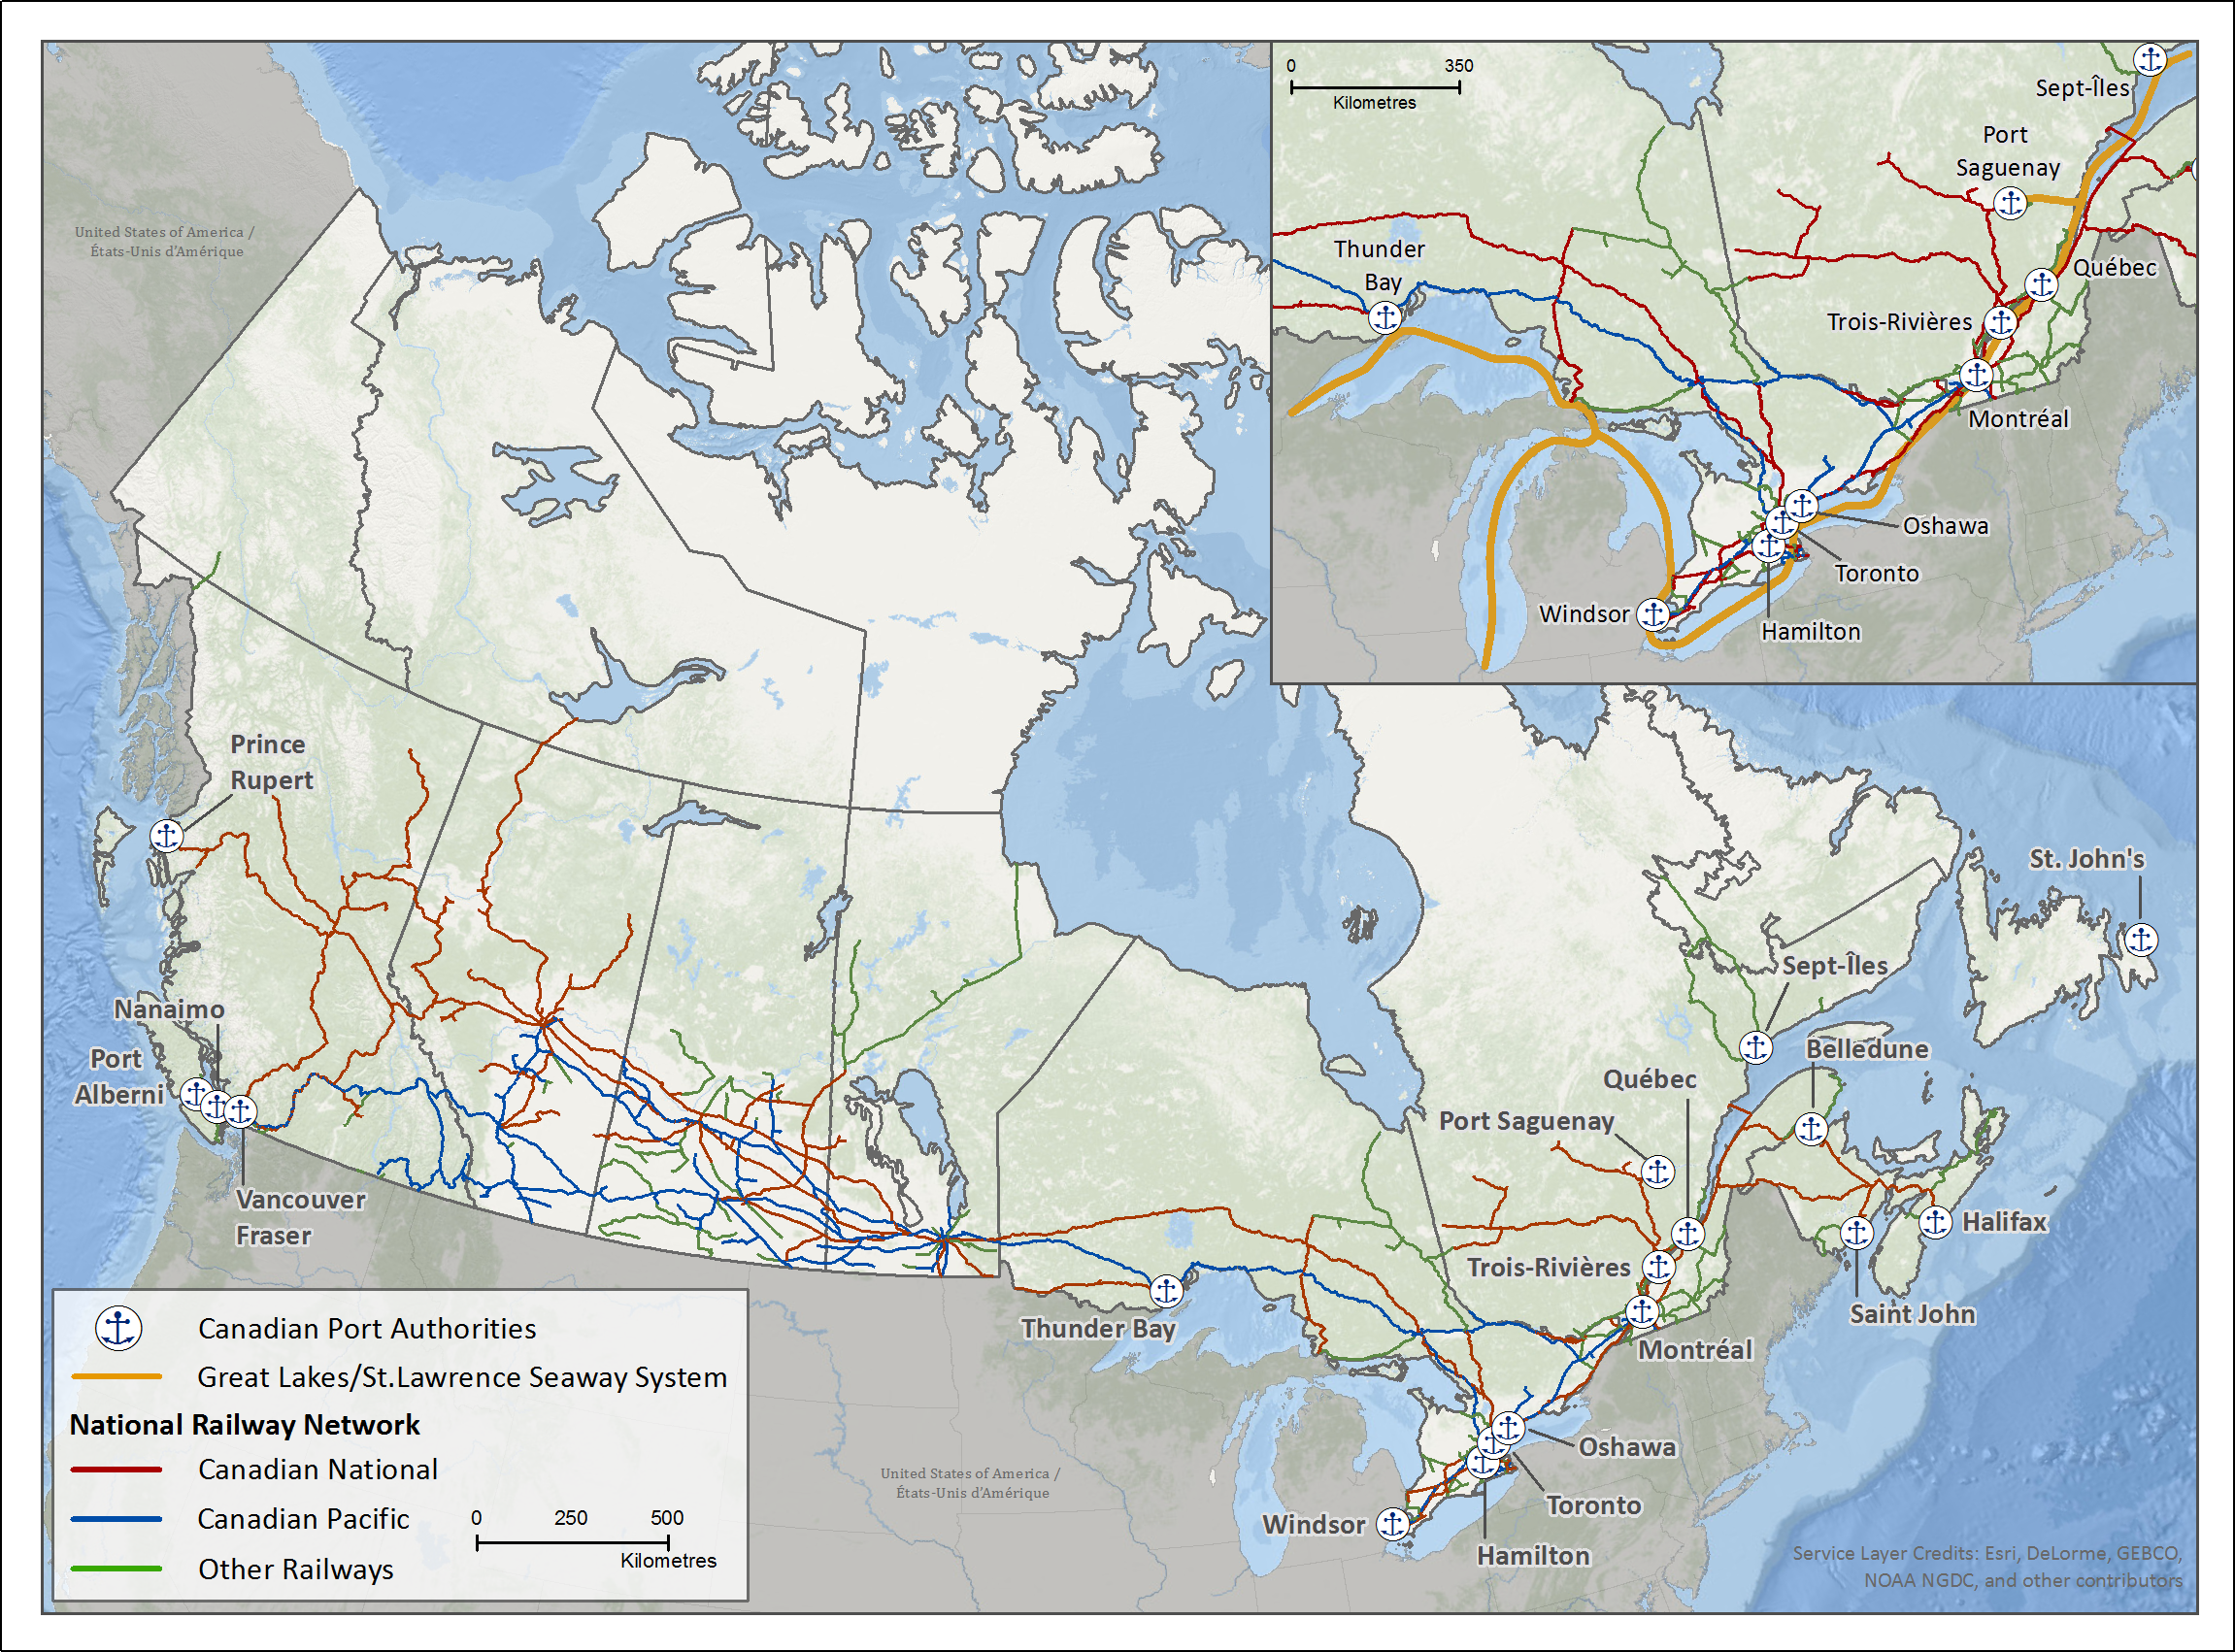 canadian pacific system map The Canadian Transportation System canadian pacific system map